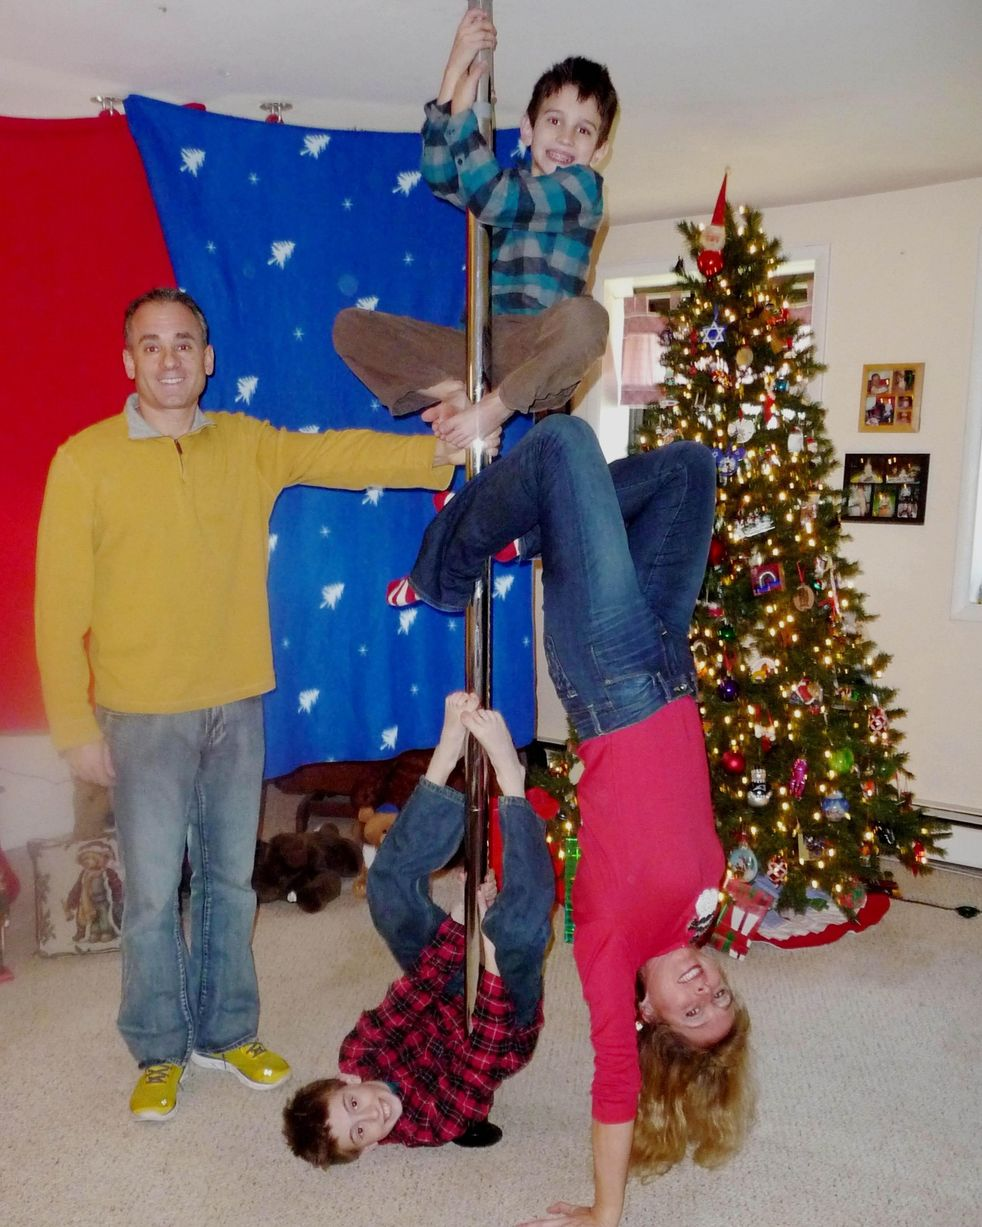 Awkward family Christmas photographs